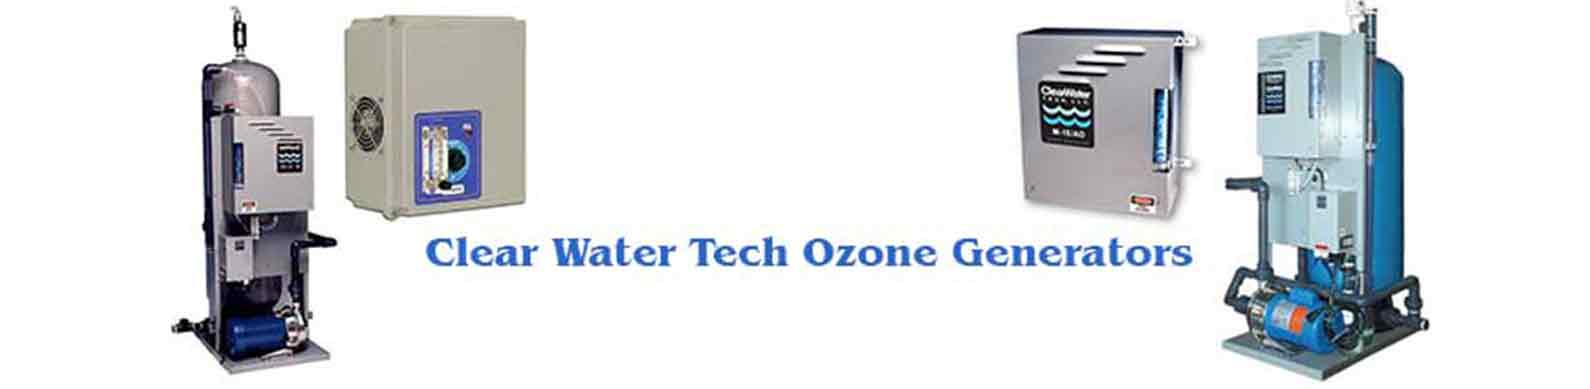 clear-water-techozone-generators-banner.jpg